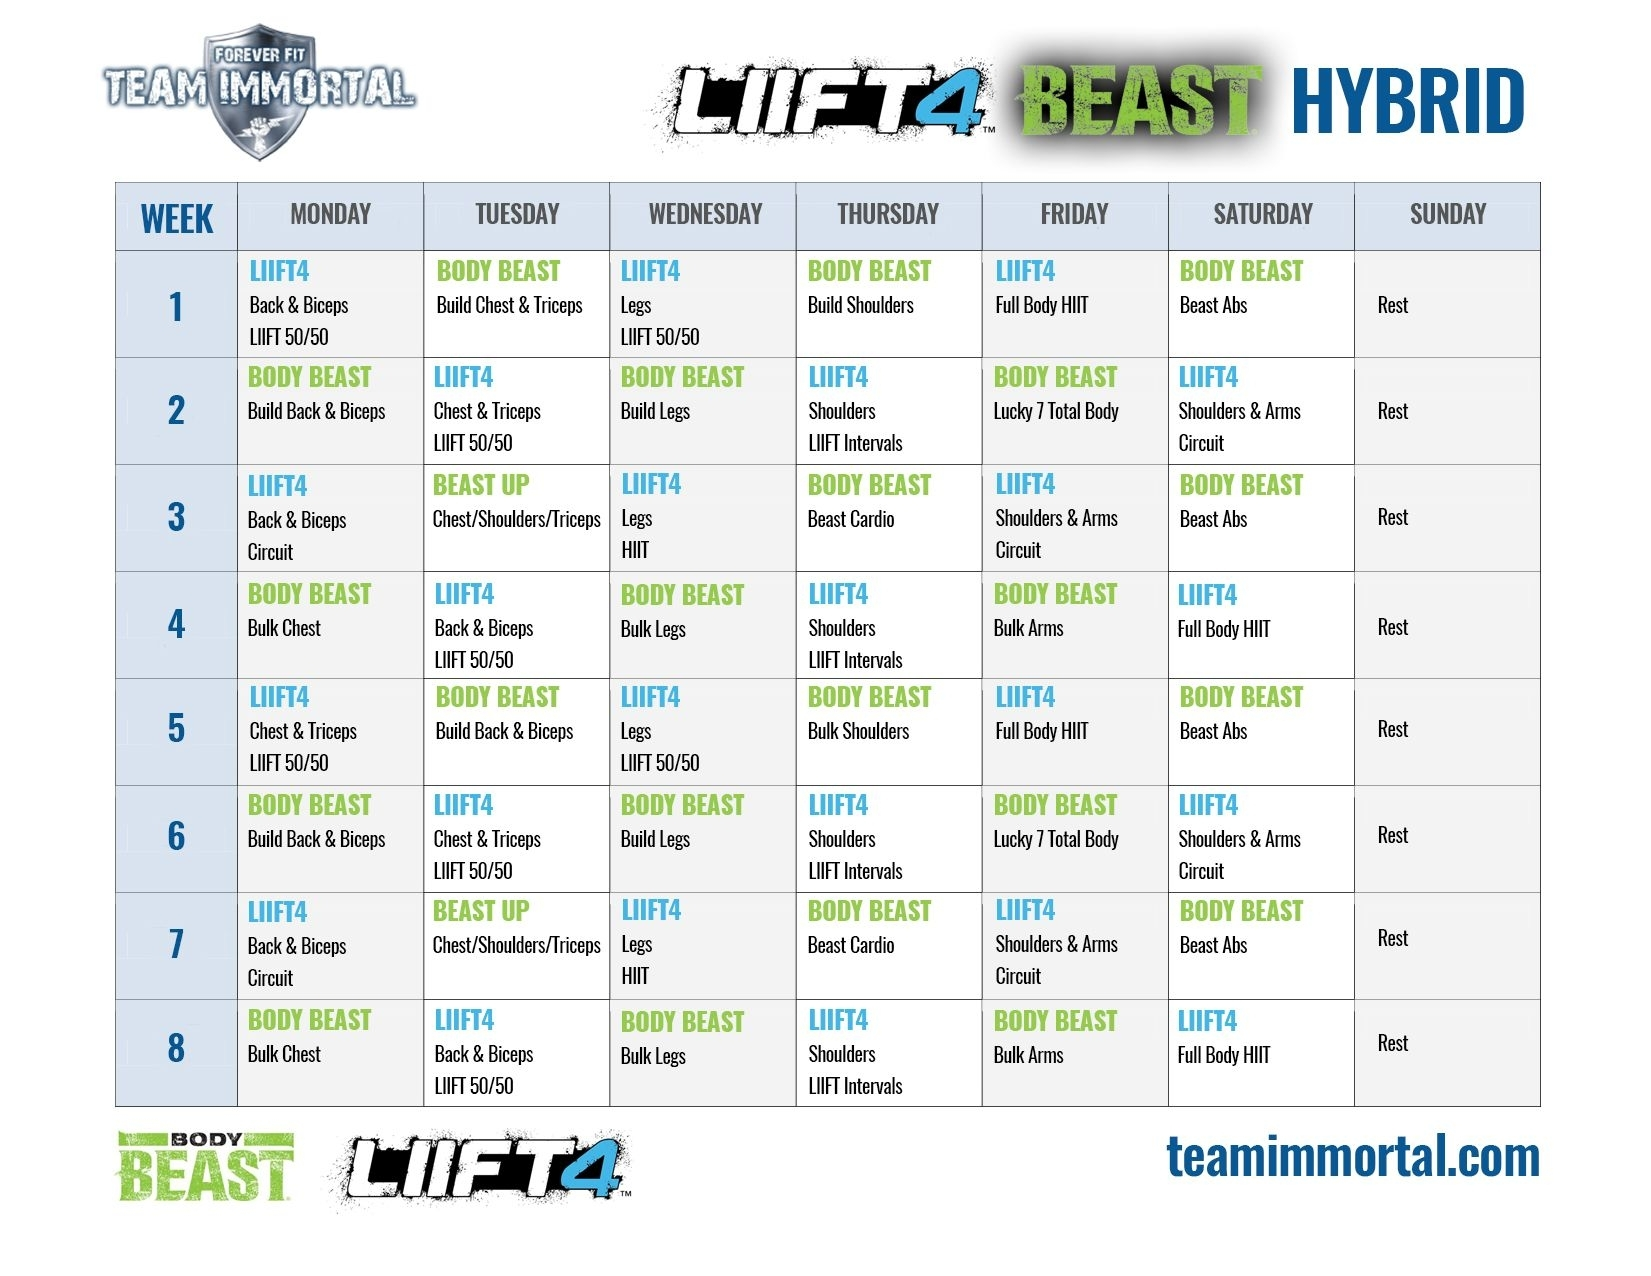 Liift4 Body Beast Hybrid   Body Beast Hybrid, Body Beast intended for Calendrier Hybride Insanity Max 30